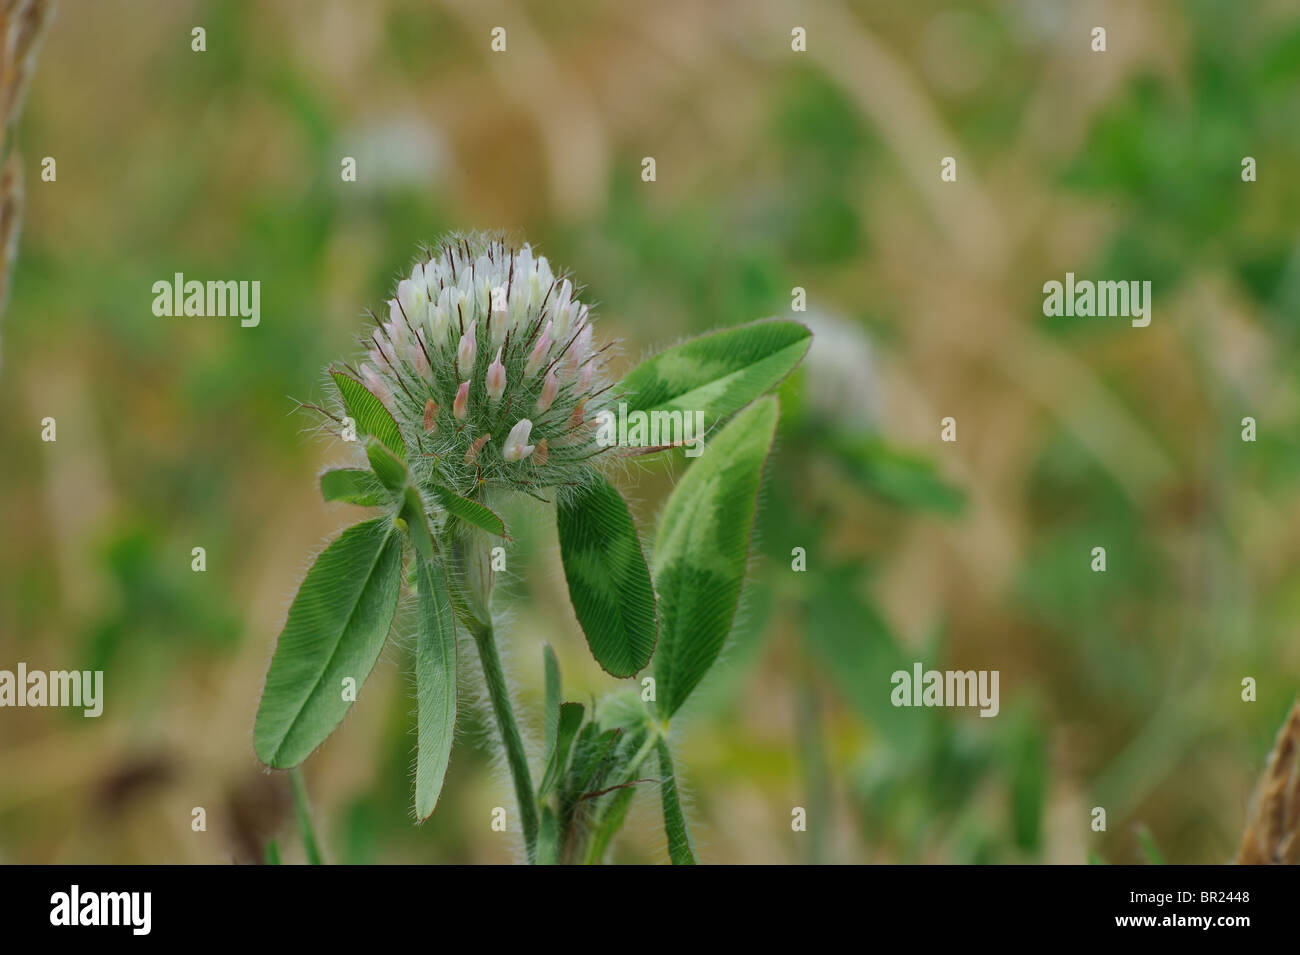 Diffuse clover - Diffused Trefoil (Trifolium diffusum) - flowering at spring - Vaucluse - Provence - France - Stock Image